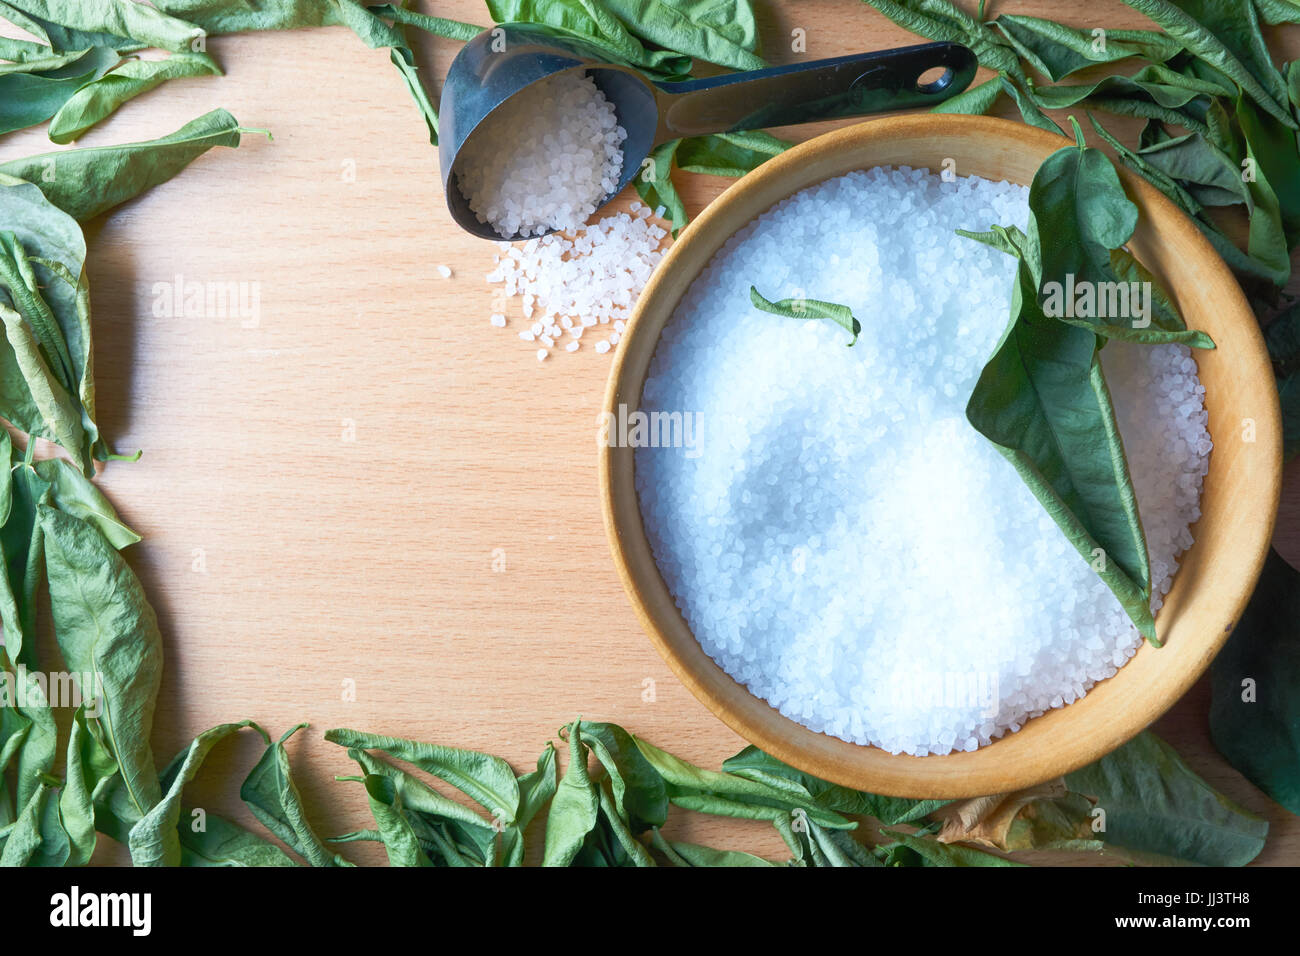 wooden bowl of sea salt with scoop framed by aromatic leaves. aroma therapy concept. copy space for title caption - Stock Image